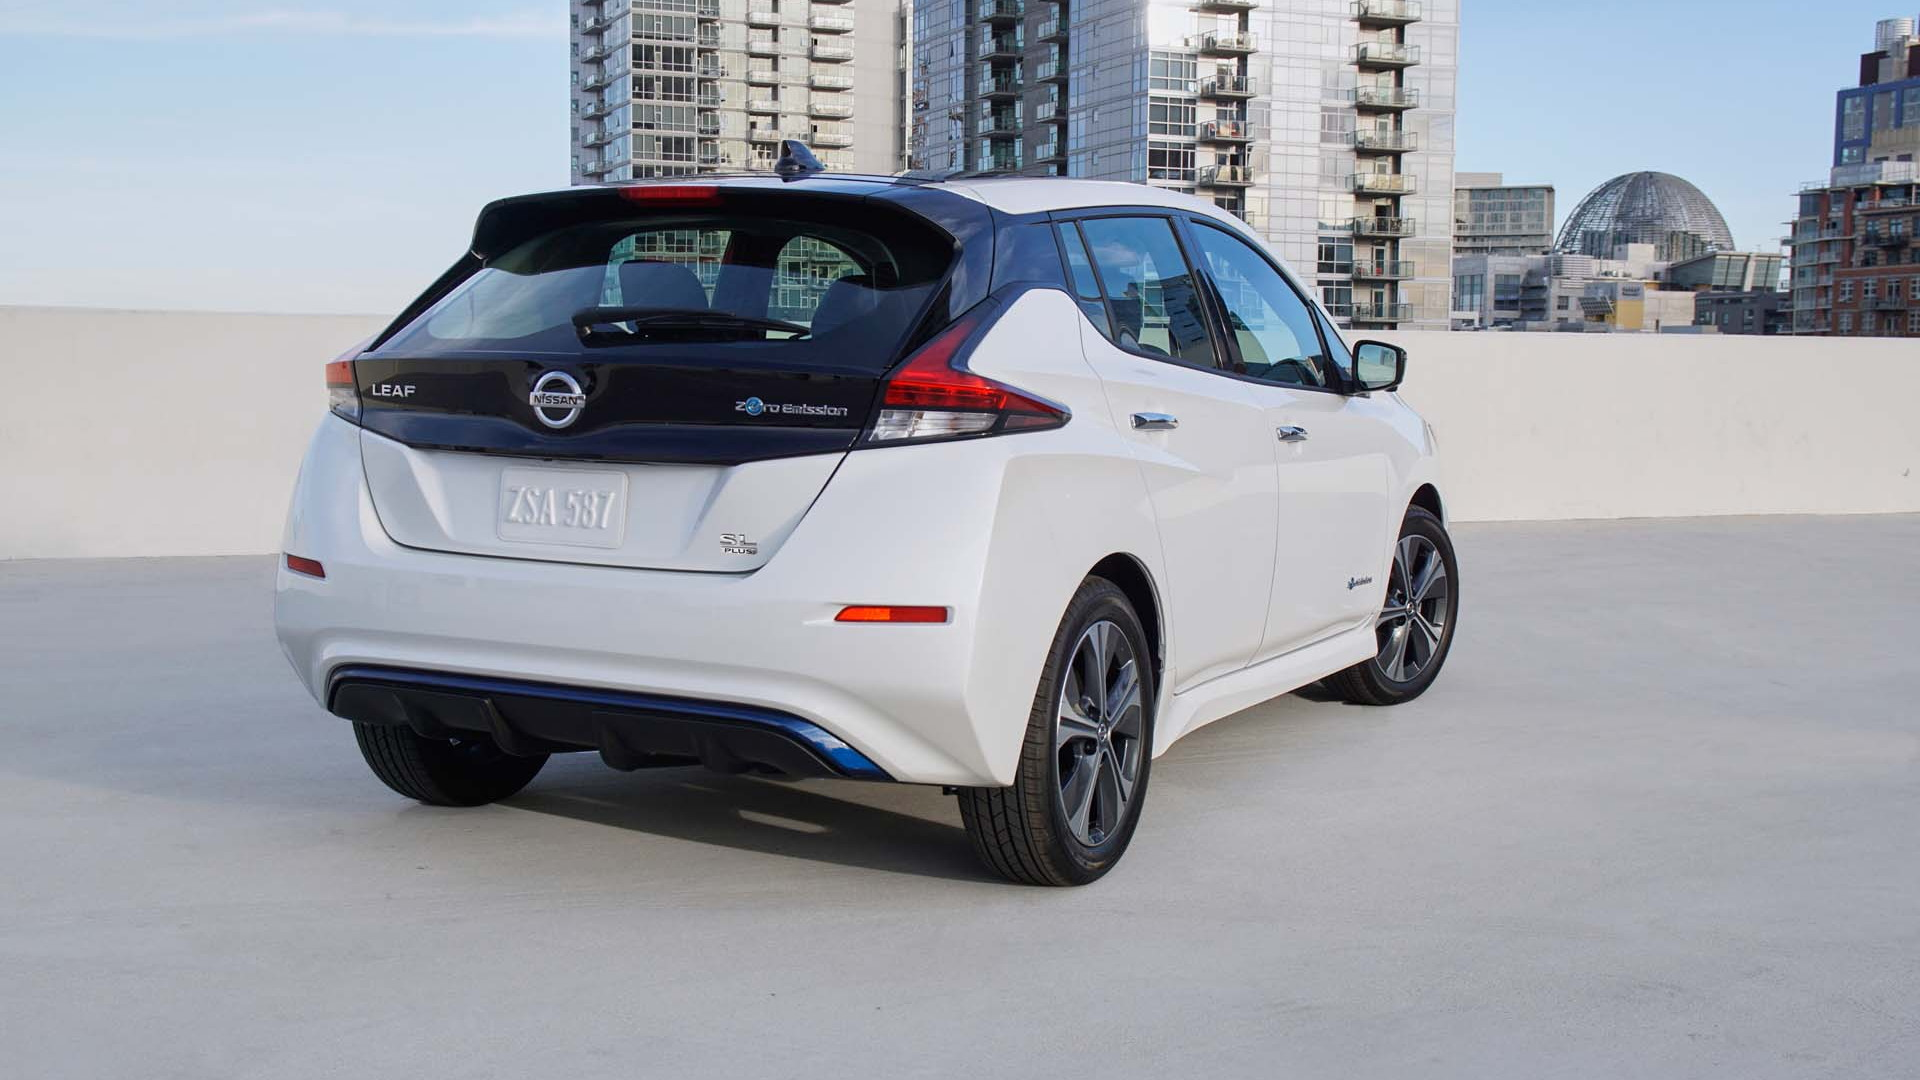 2019 Nissan Leaf Plus Vs Leaf A First Look At The Differences